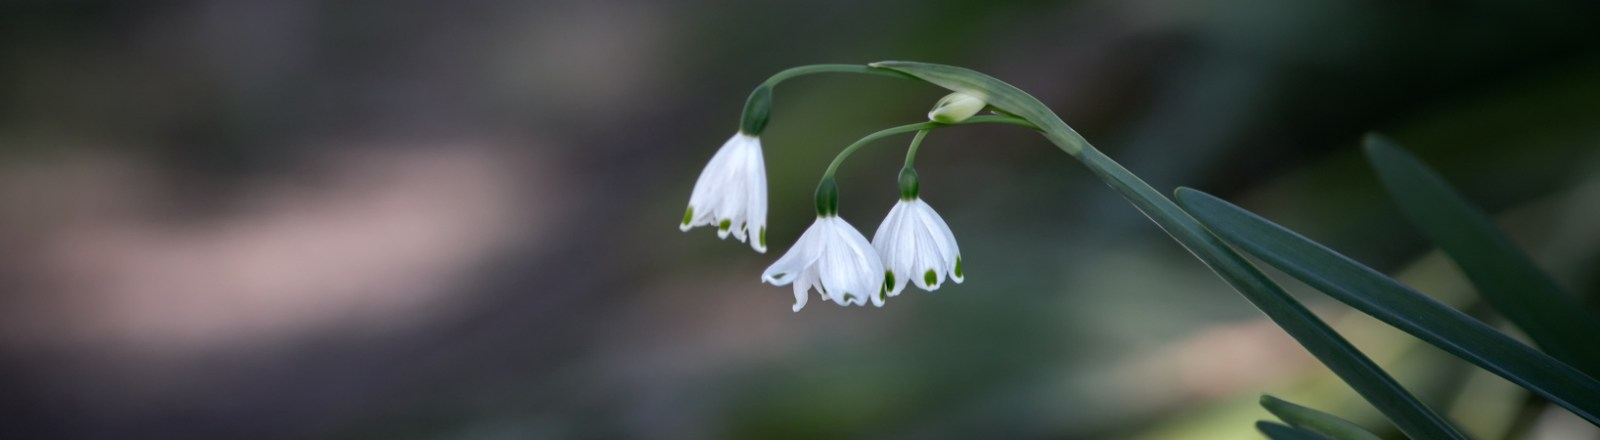 Snowdrops and Snowflakes, Daffodils and Tulip Leaves